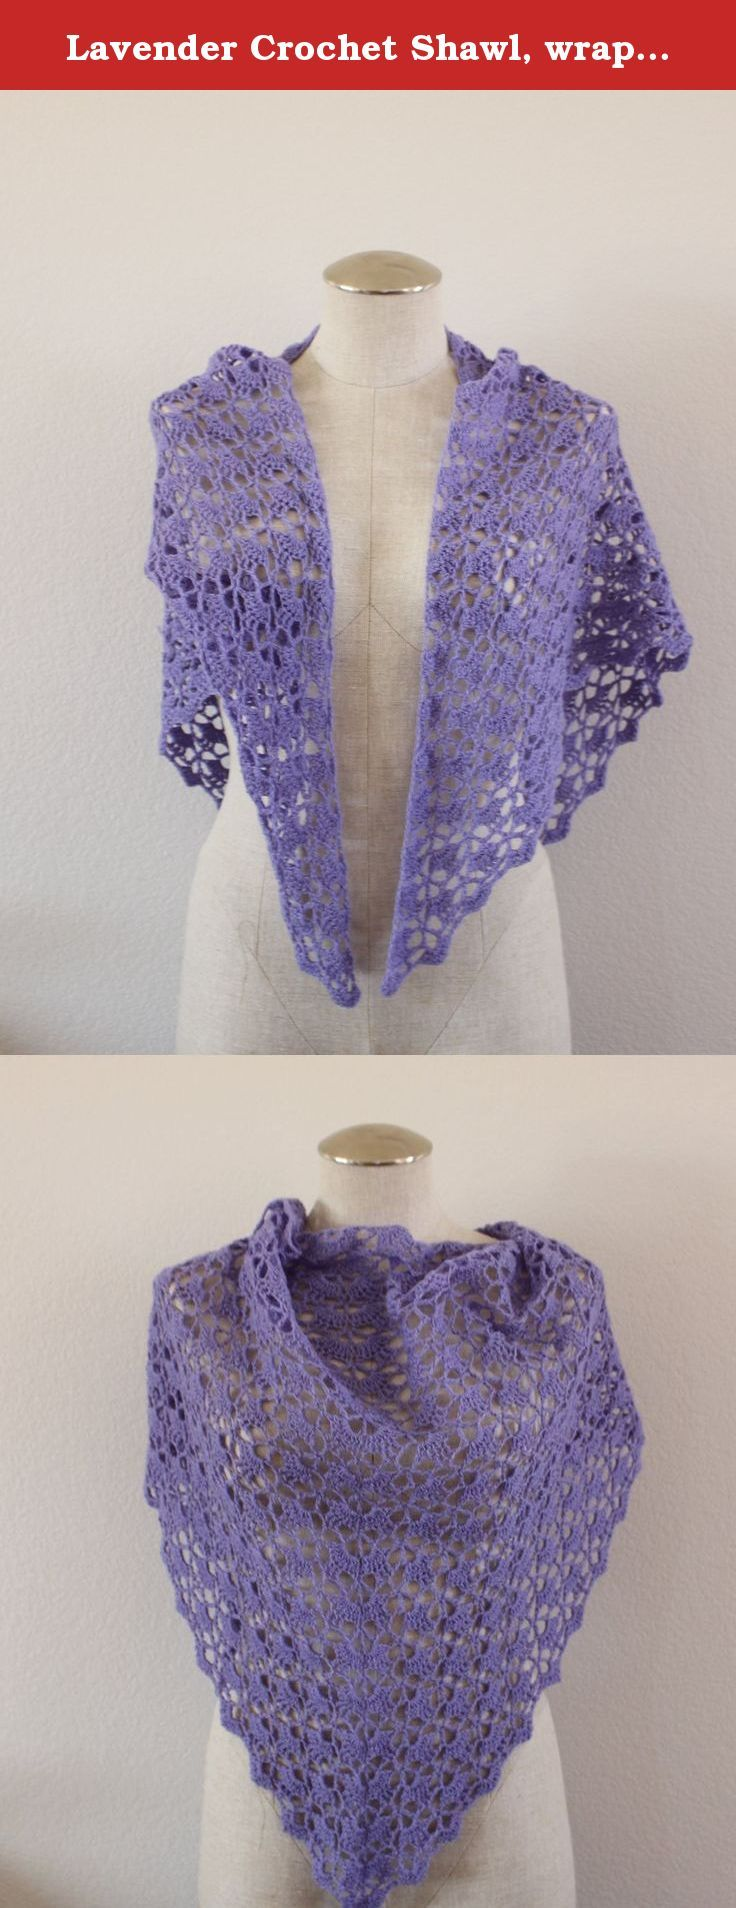 "Lavender Crochet Shawl, wraps scarf shawlette handmade stole, triangle scarf, mother's day gift, summer crochet. This soft shawl is stylish and comfortable to wear! Made with an easy care Cascade 220 fingering yarn that is warm and light. It is perfect for all seasons. It would be great around your shoulders or wrapped around your hips as a swimsuit cover. Great Mother's day gift. This shawl is READY TO SHIP. Measures 29"" from center neck to bottom point, and 60"" wide. Care Instructions:..."